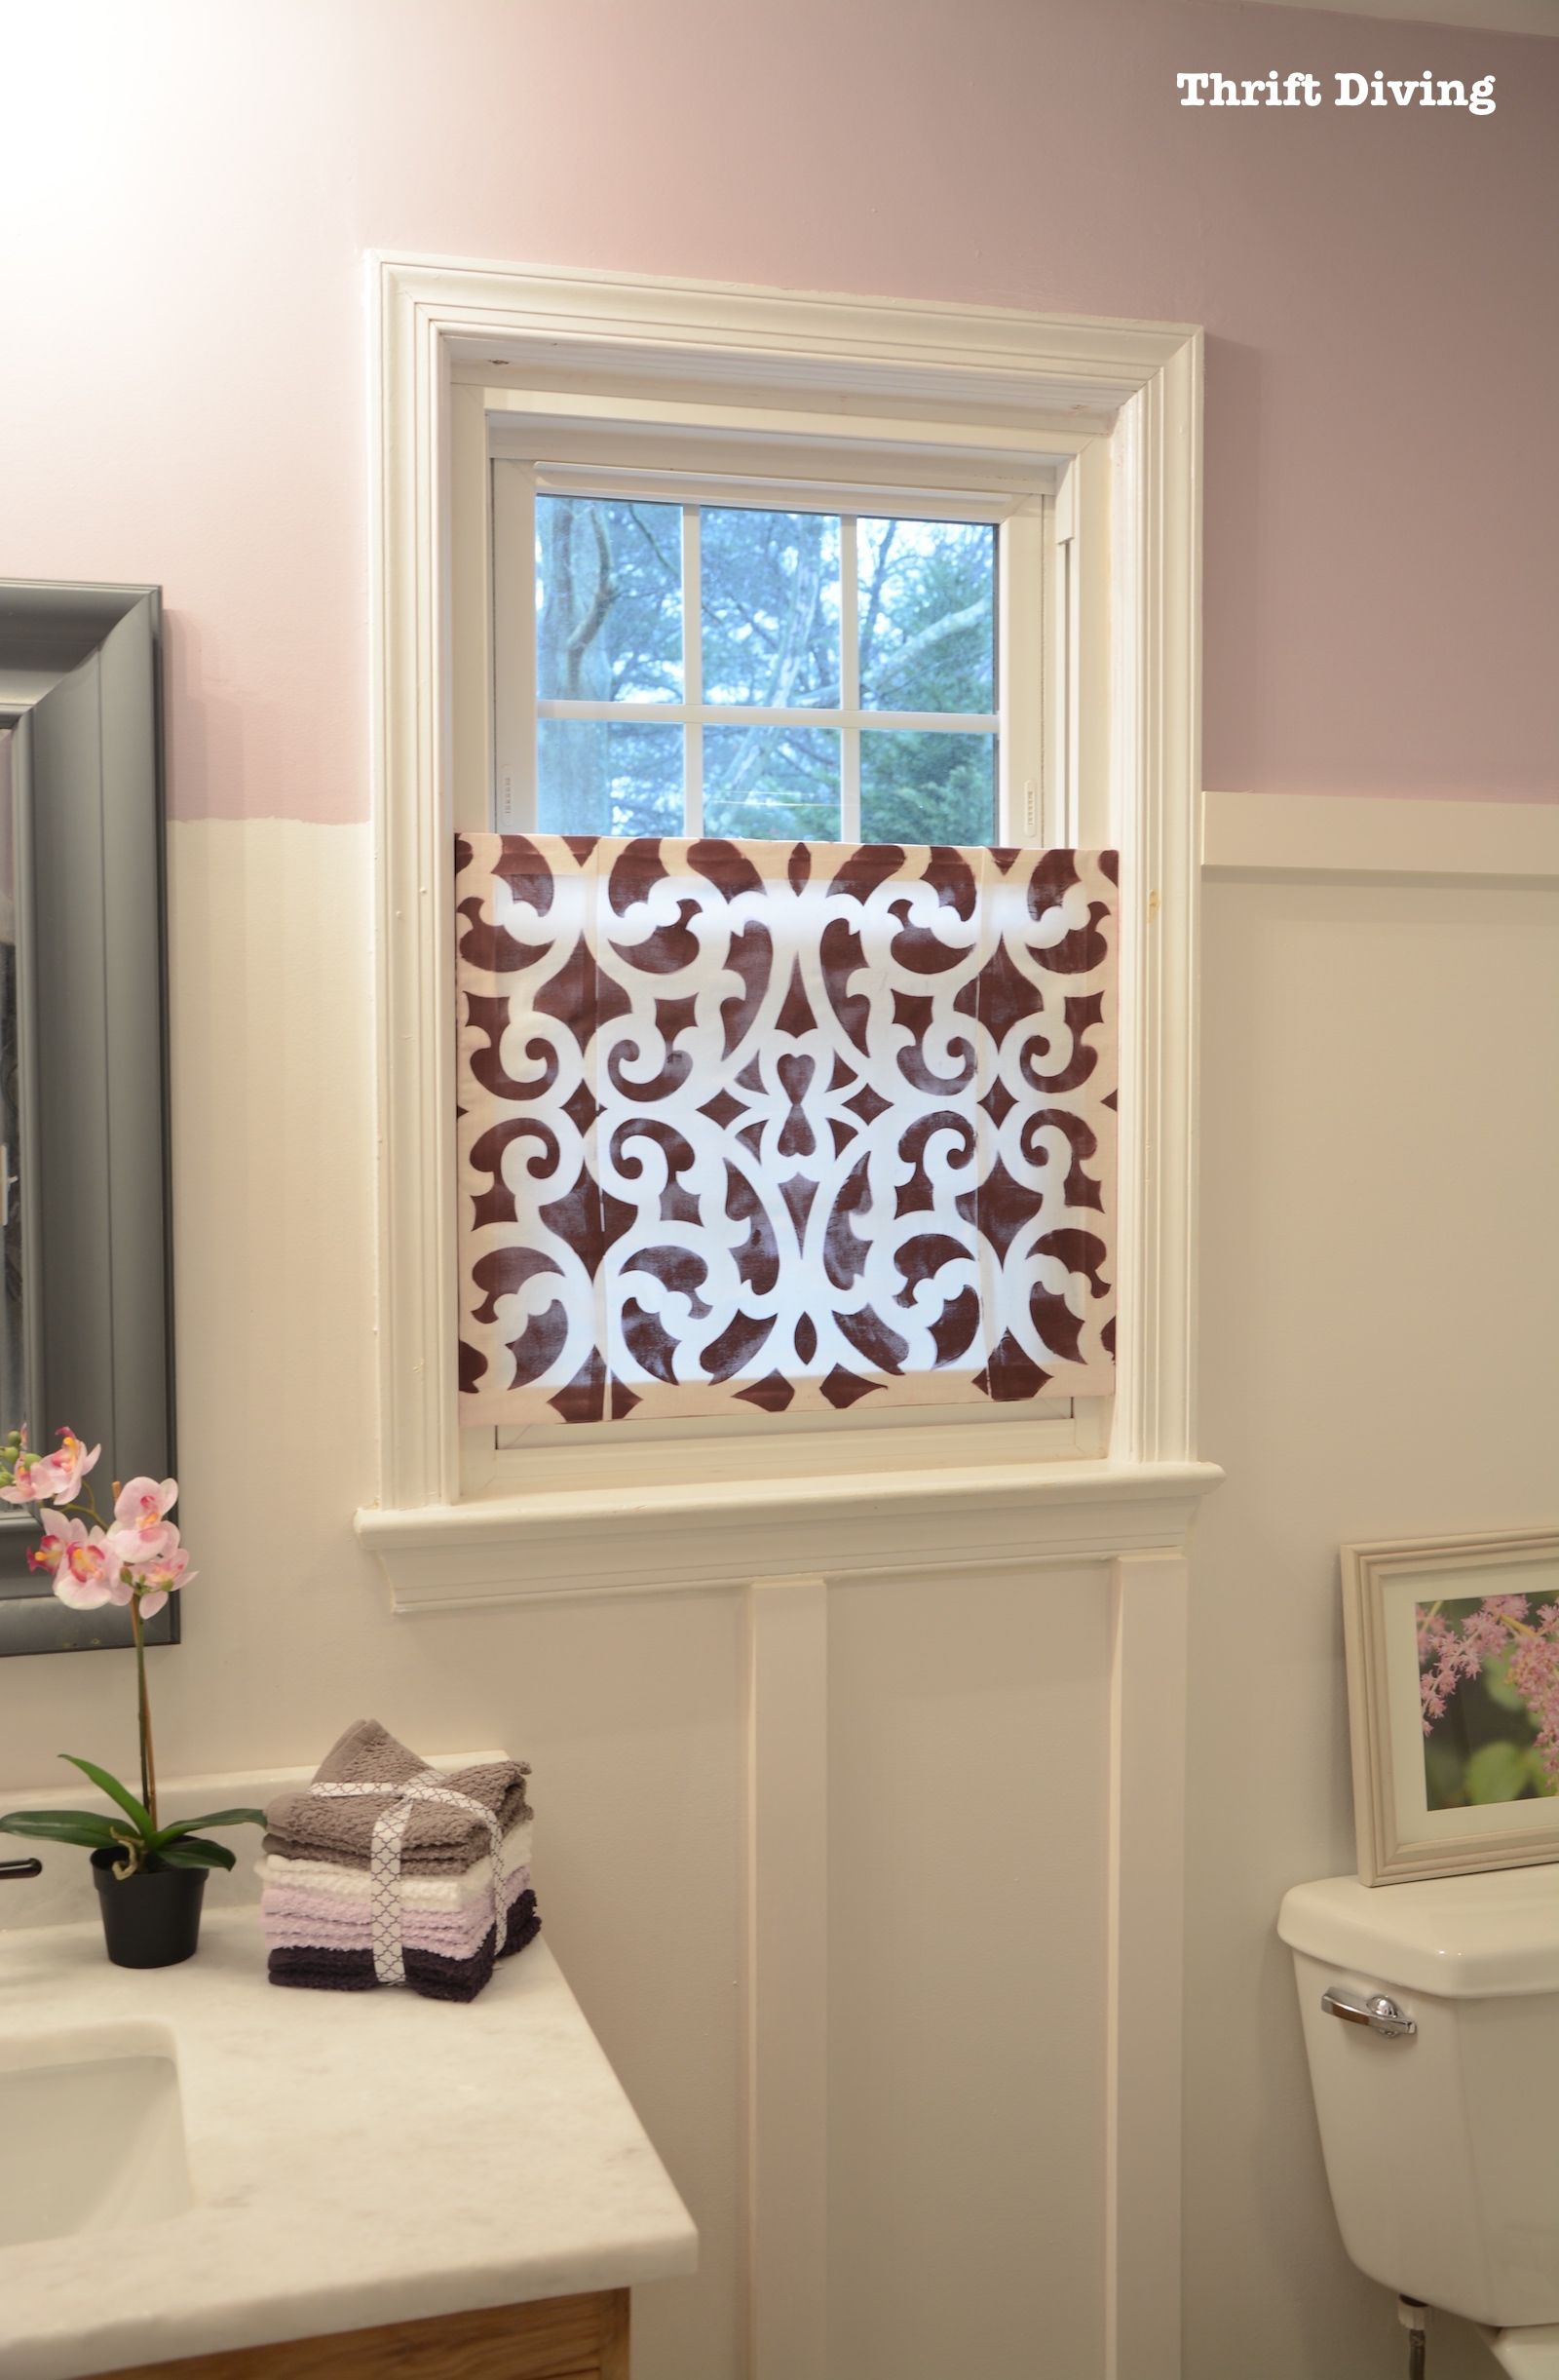 Lovely bathroom window treatment ideas bathroom ideas designs blograquelamaral for Bathroom window treatments privacy